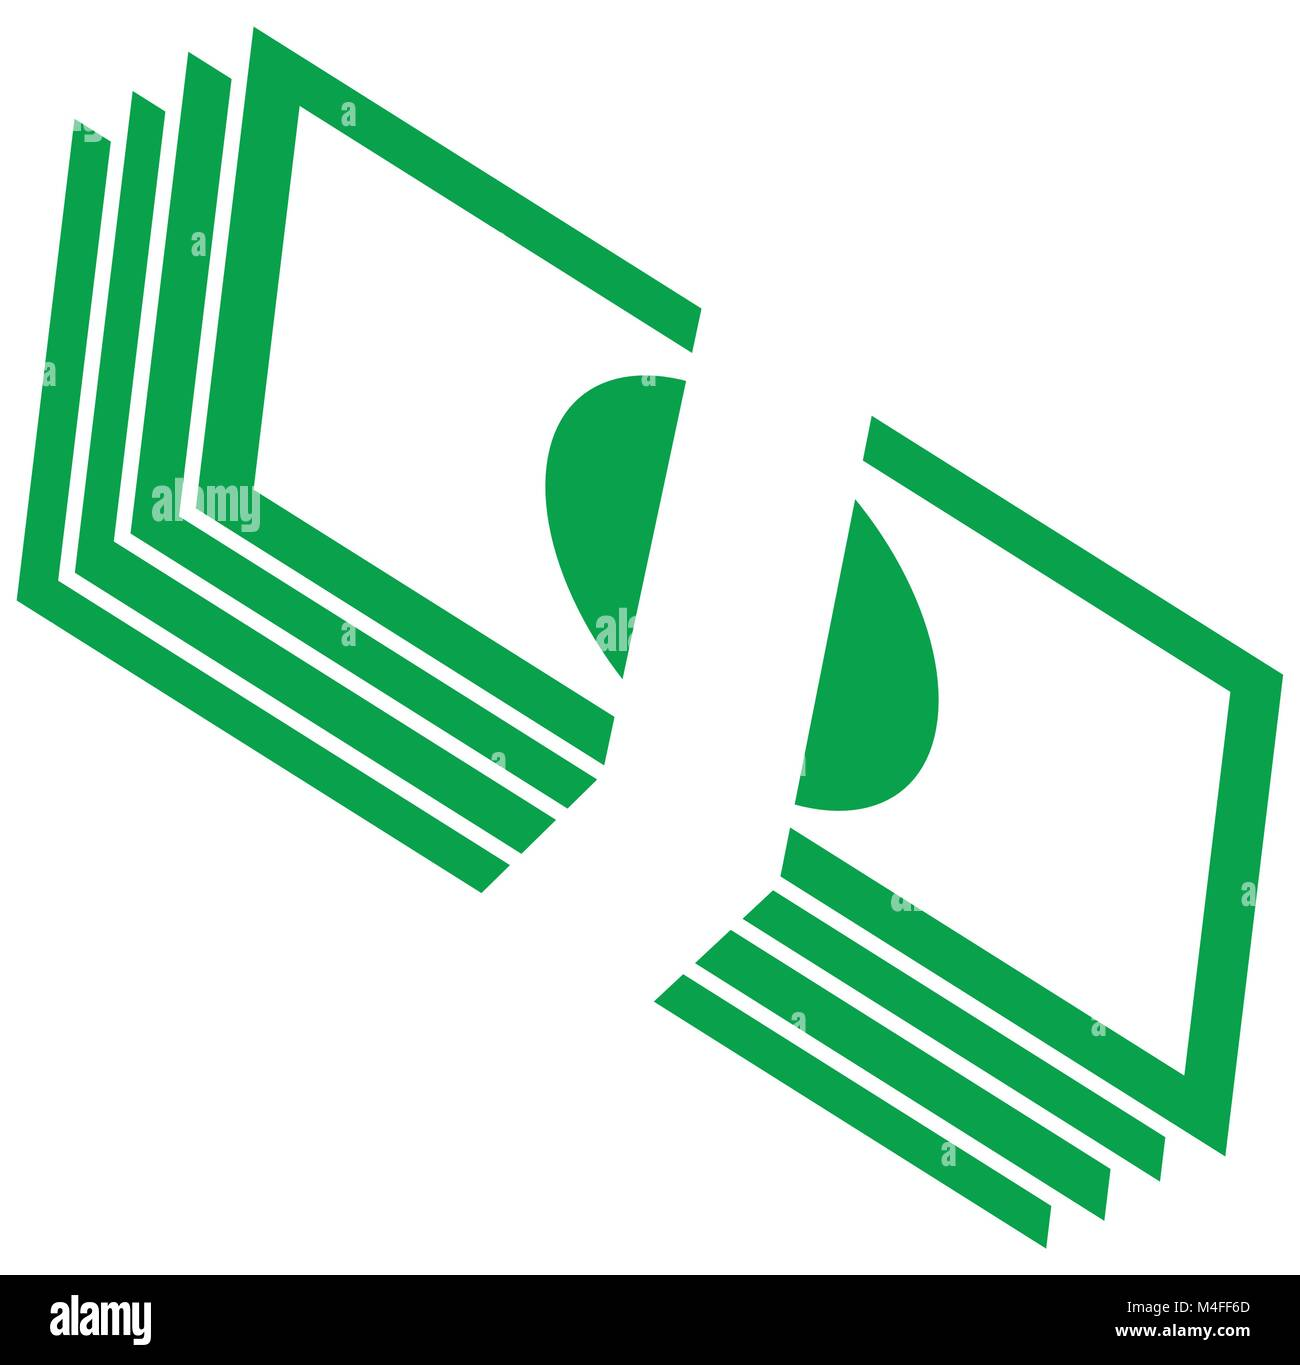 Vectors stock photos vectors stock images alamy pile of bank notes or bills stacked currency icon or logo vector symbol for biocorpaavc Gallery